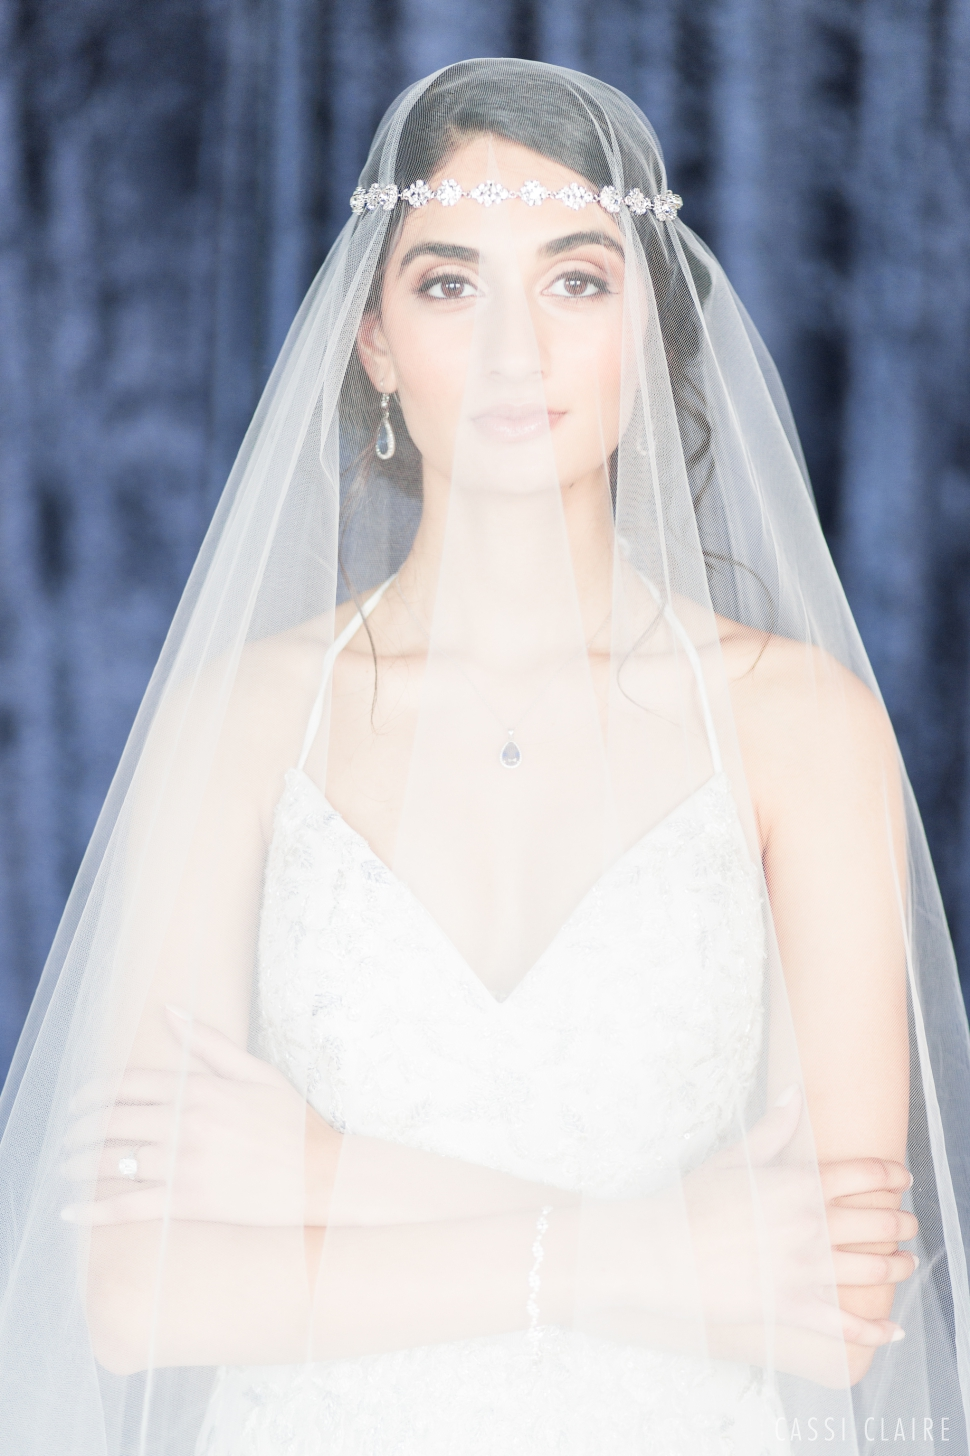 Blue-Monotone-Wedding_CassiClaire_25.jpg